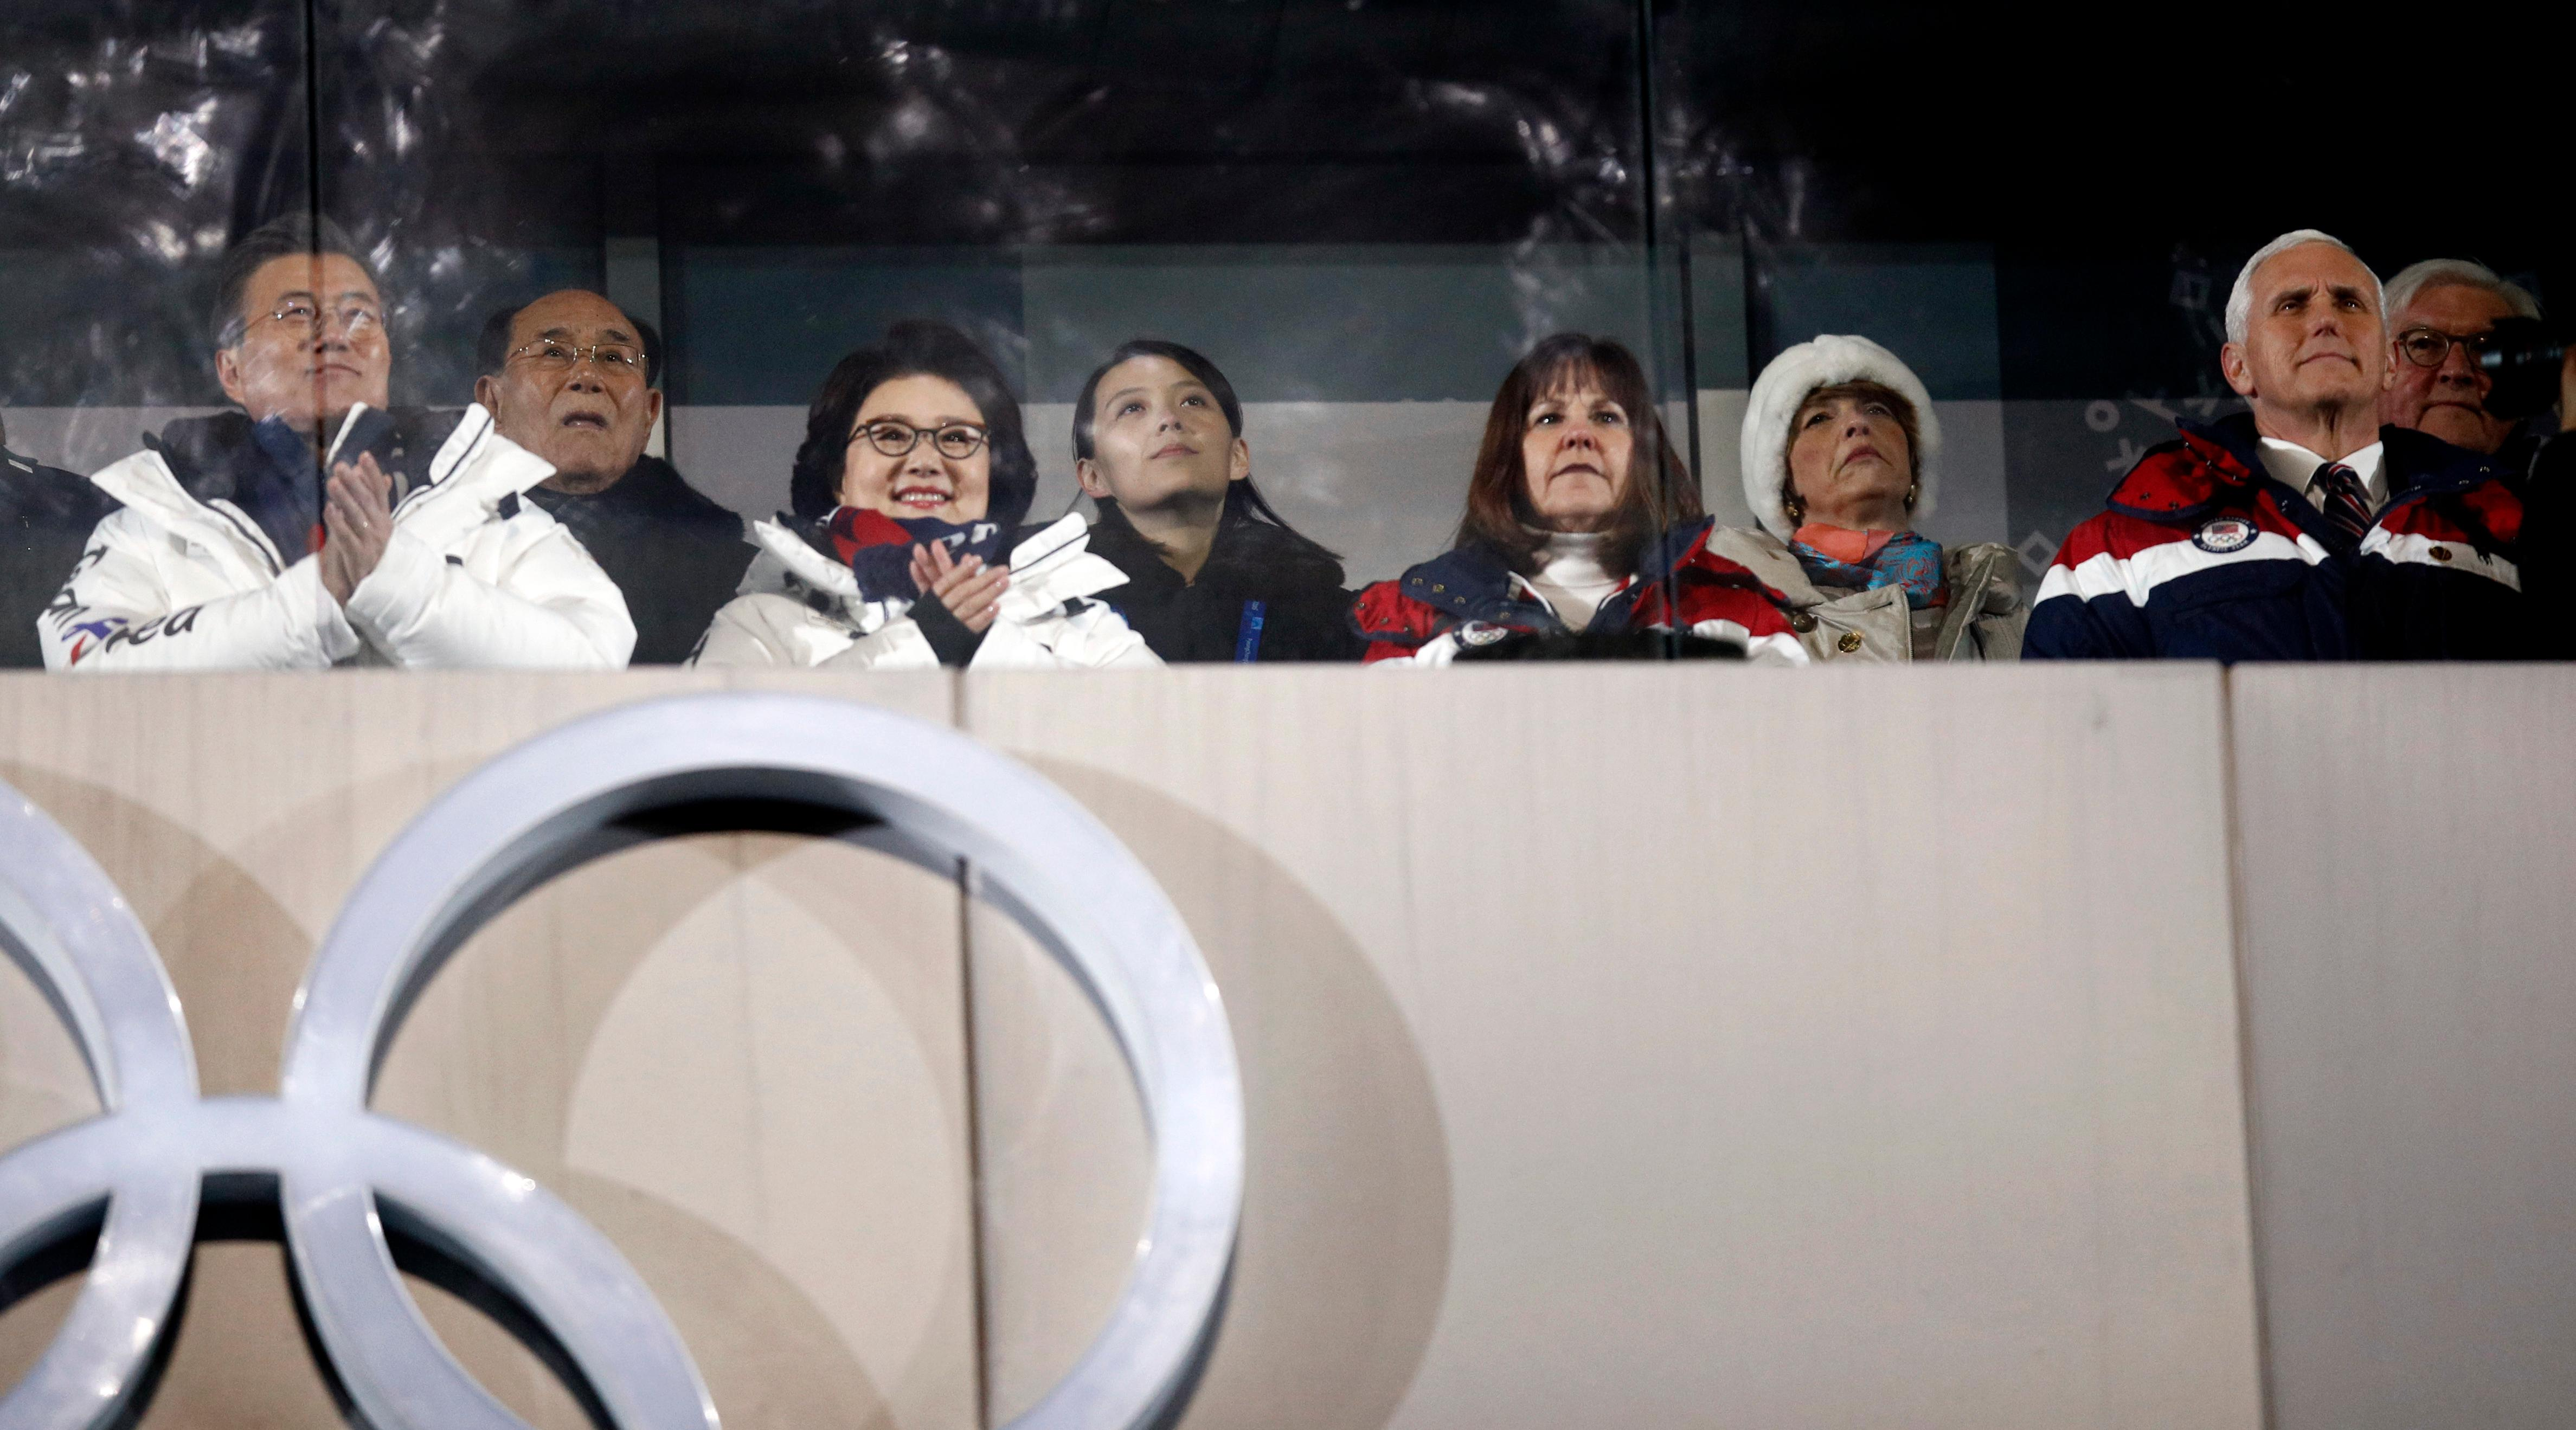 Kim Yong Nam, president of the Presidium of the North's Parliament, second from left in the back, and Kim Jong Un's sister Kim Yo Jong, center, observe with South Korean President Moon Jae-in, front left, first lady Kim Jung-sook,  second lady Karen Pence, and United States Vice President Mike Pence during the opening ceremony of the 2018 Winter Olympics in Pyeongchang, South Korea, Friday, Feb. 9, 2018. (AP Photo/Jae C. Hong)